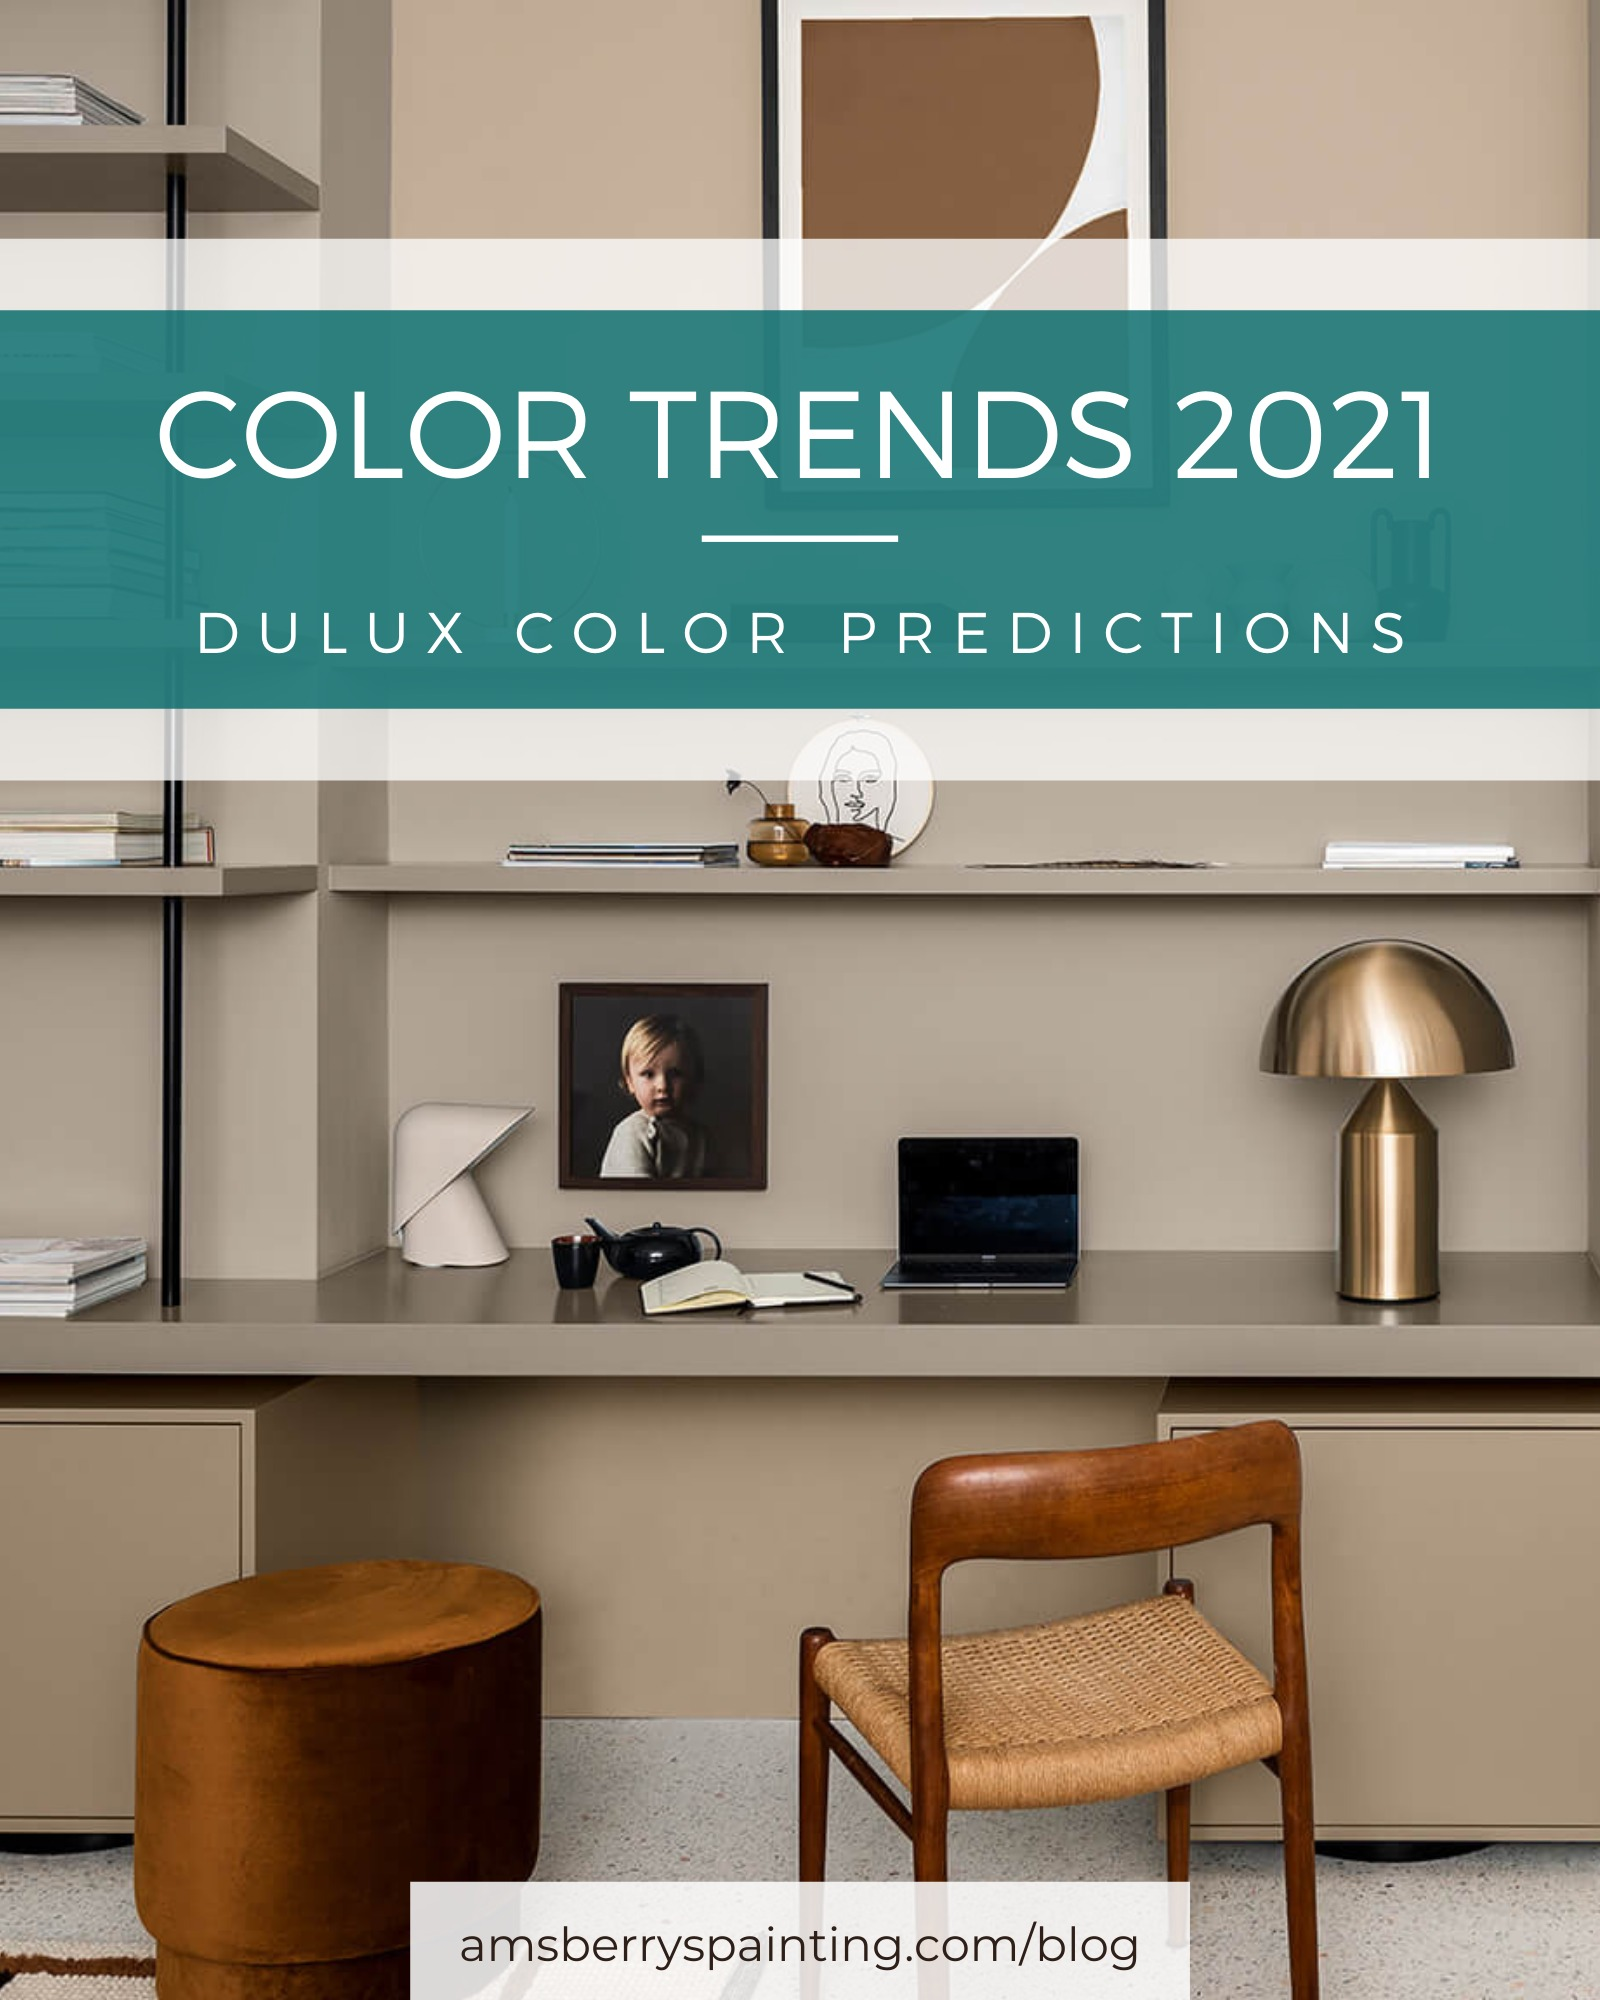 Color Trend 2021 Predictions